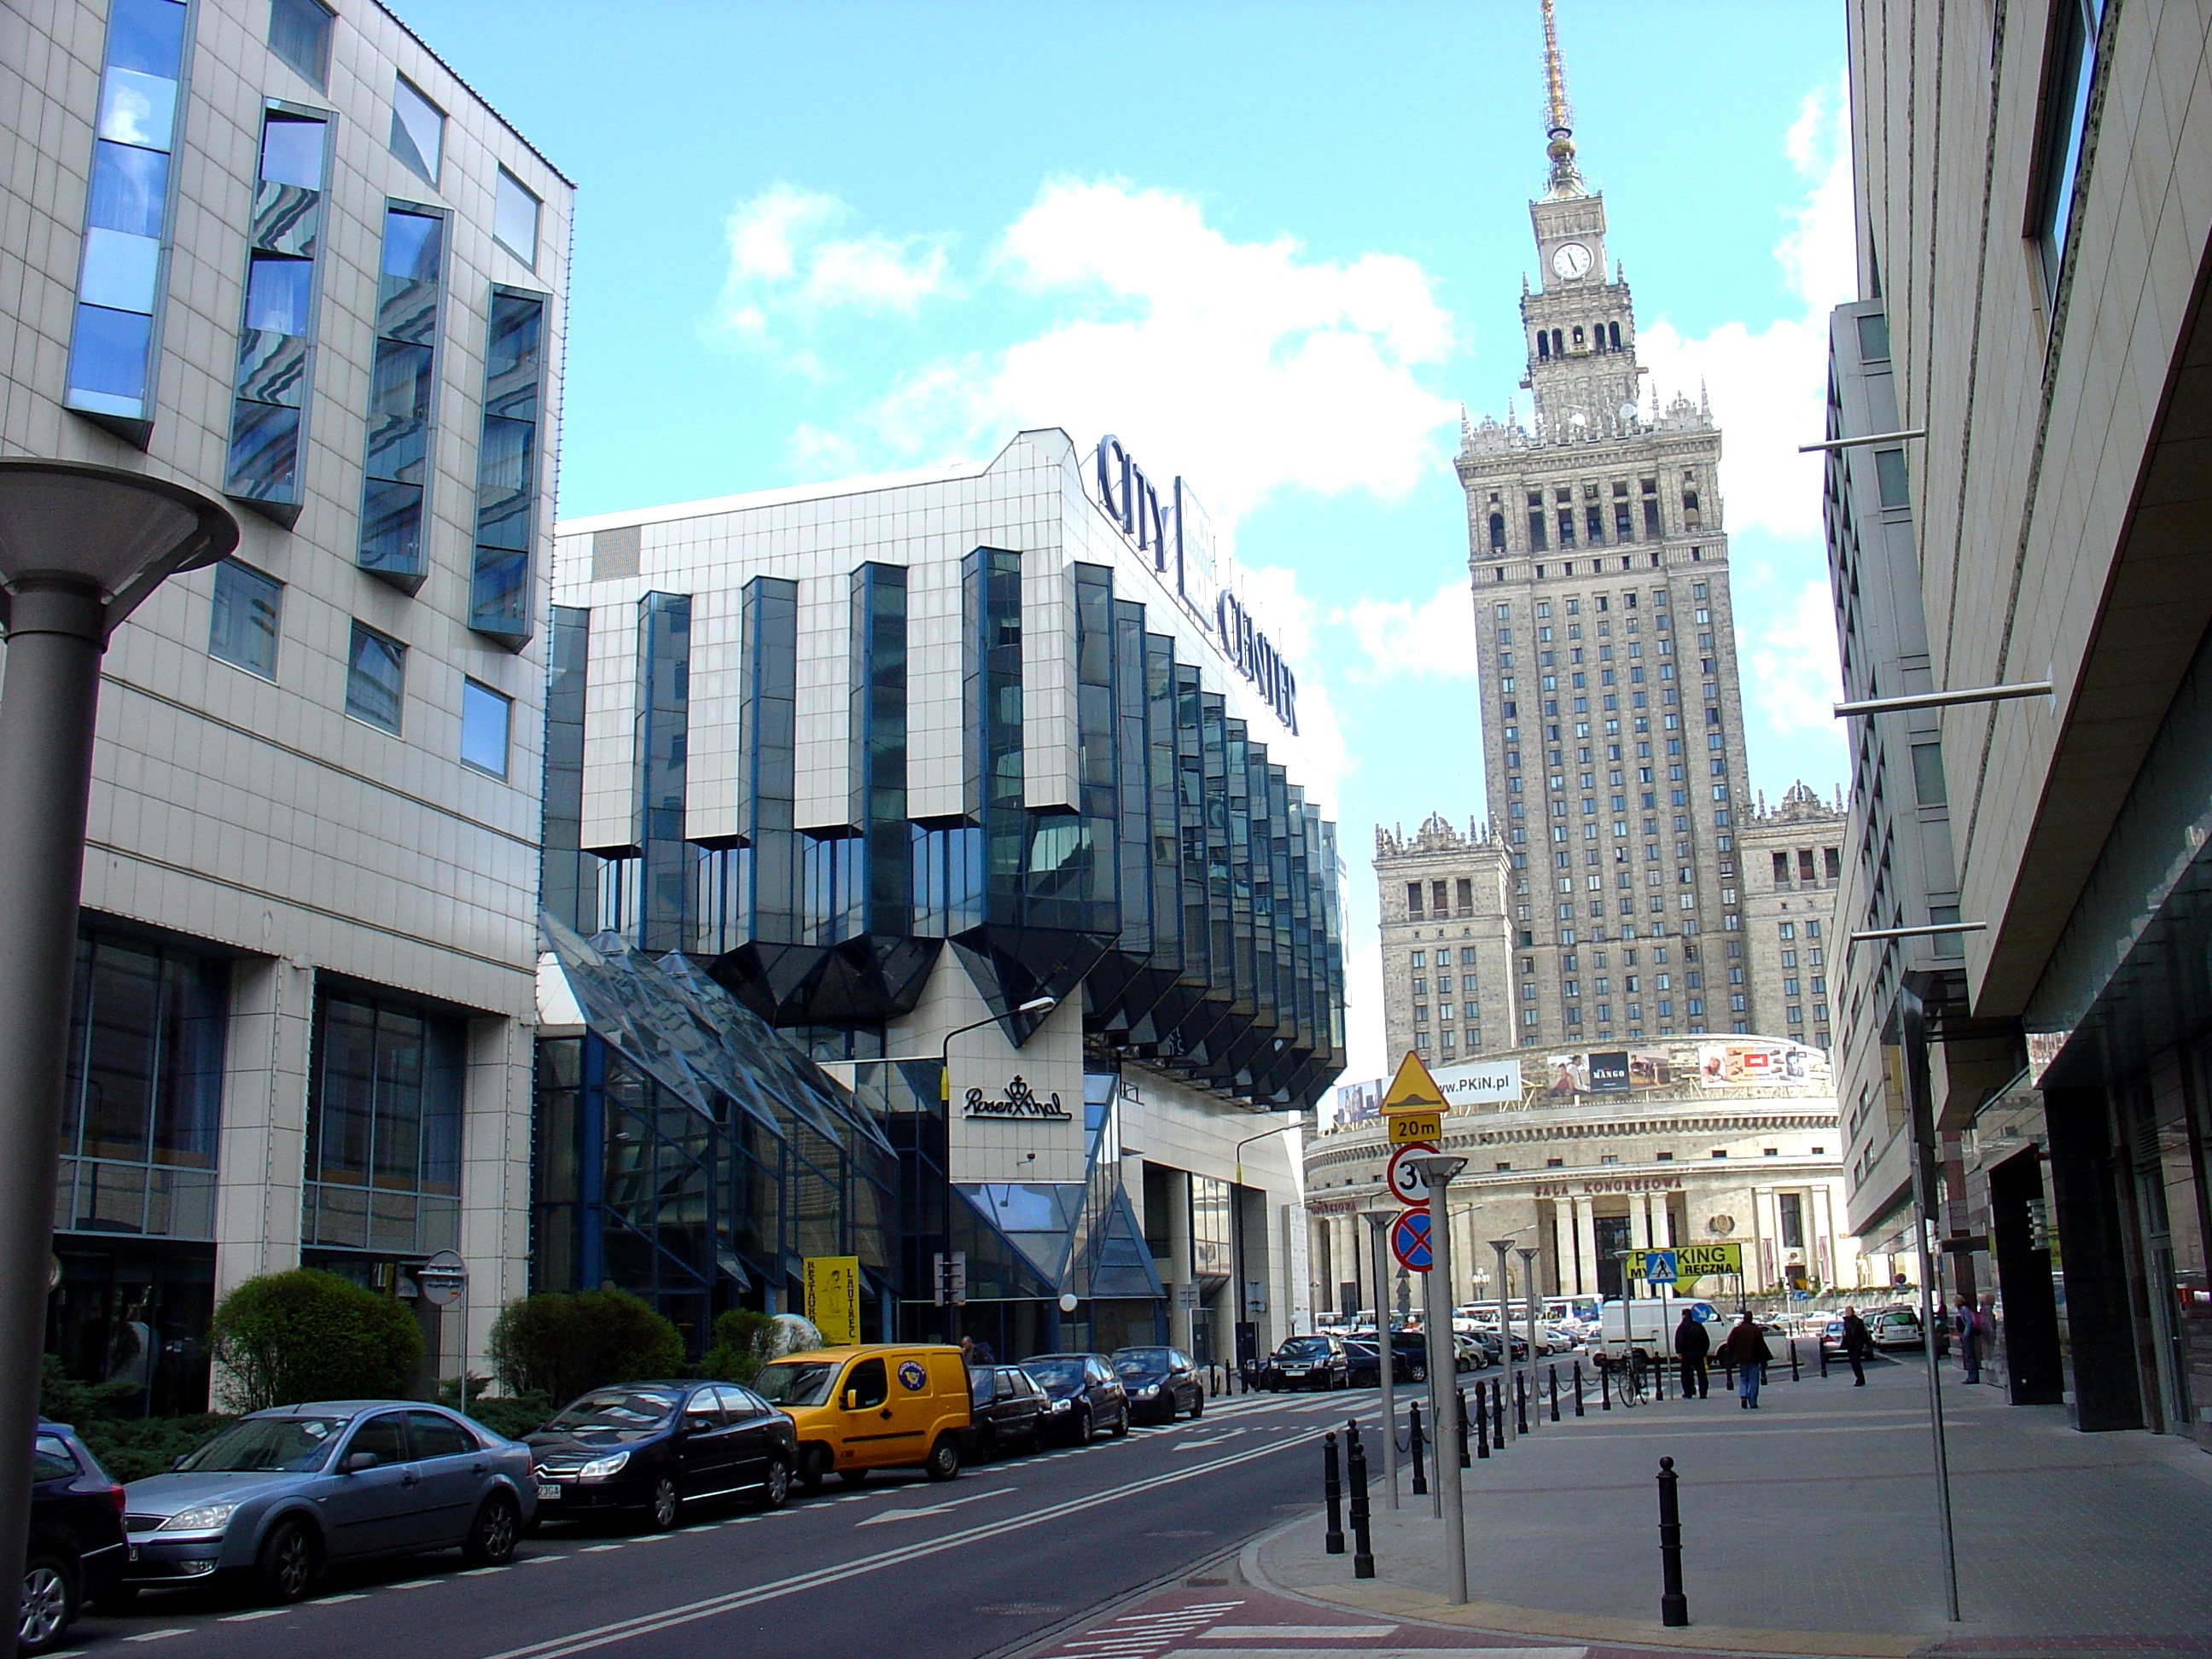 city-center-building-in-warsaw-1213696